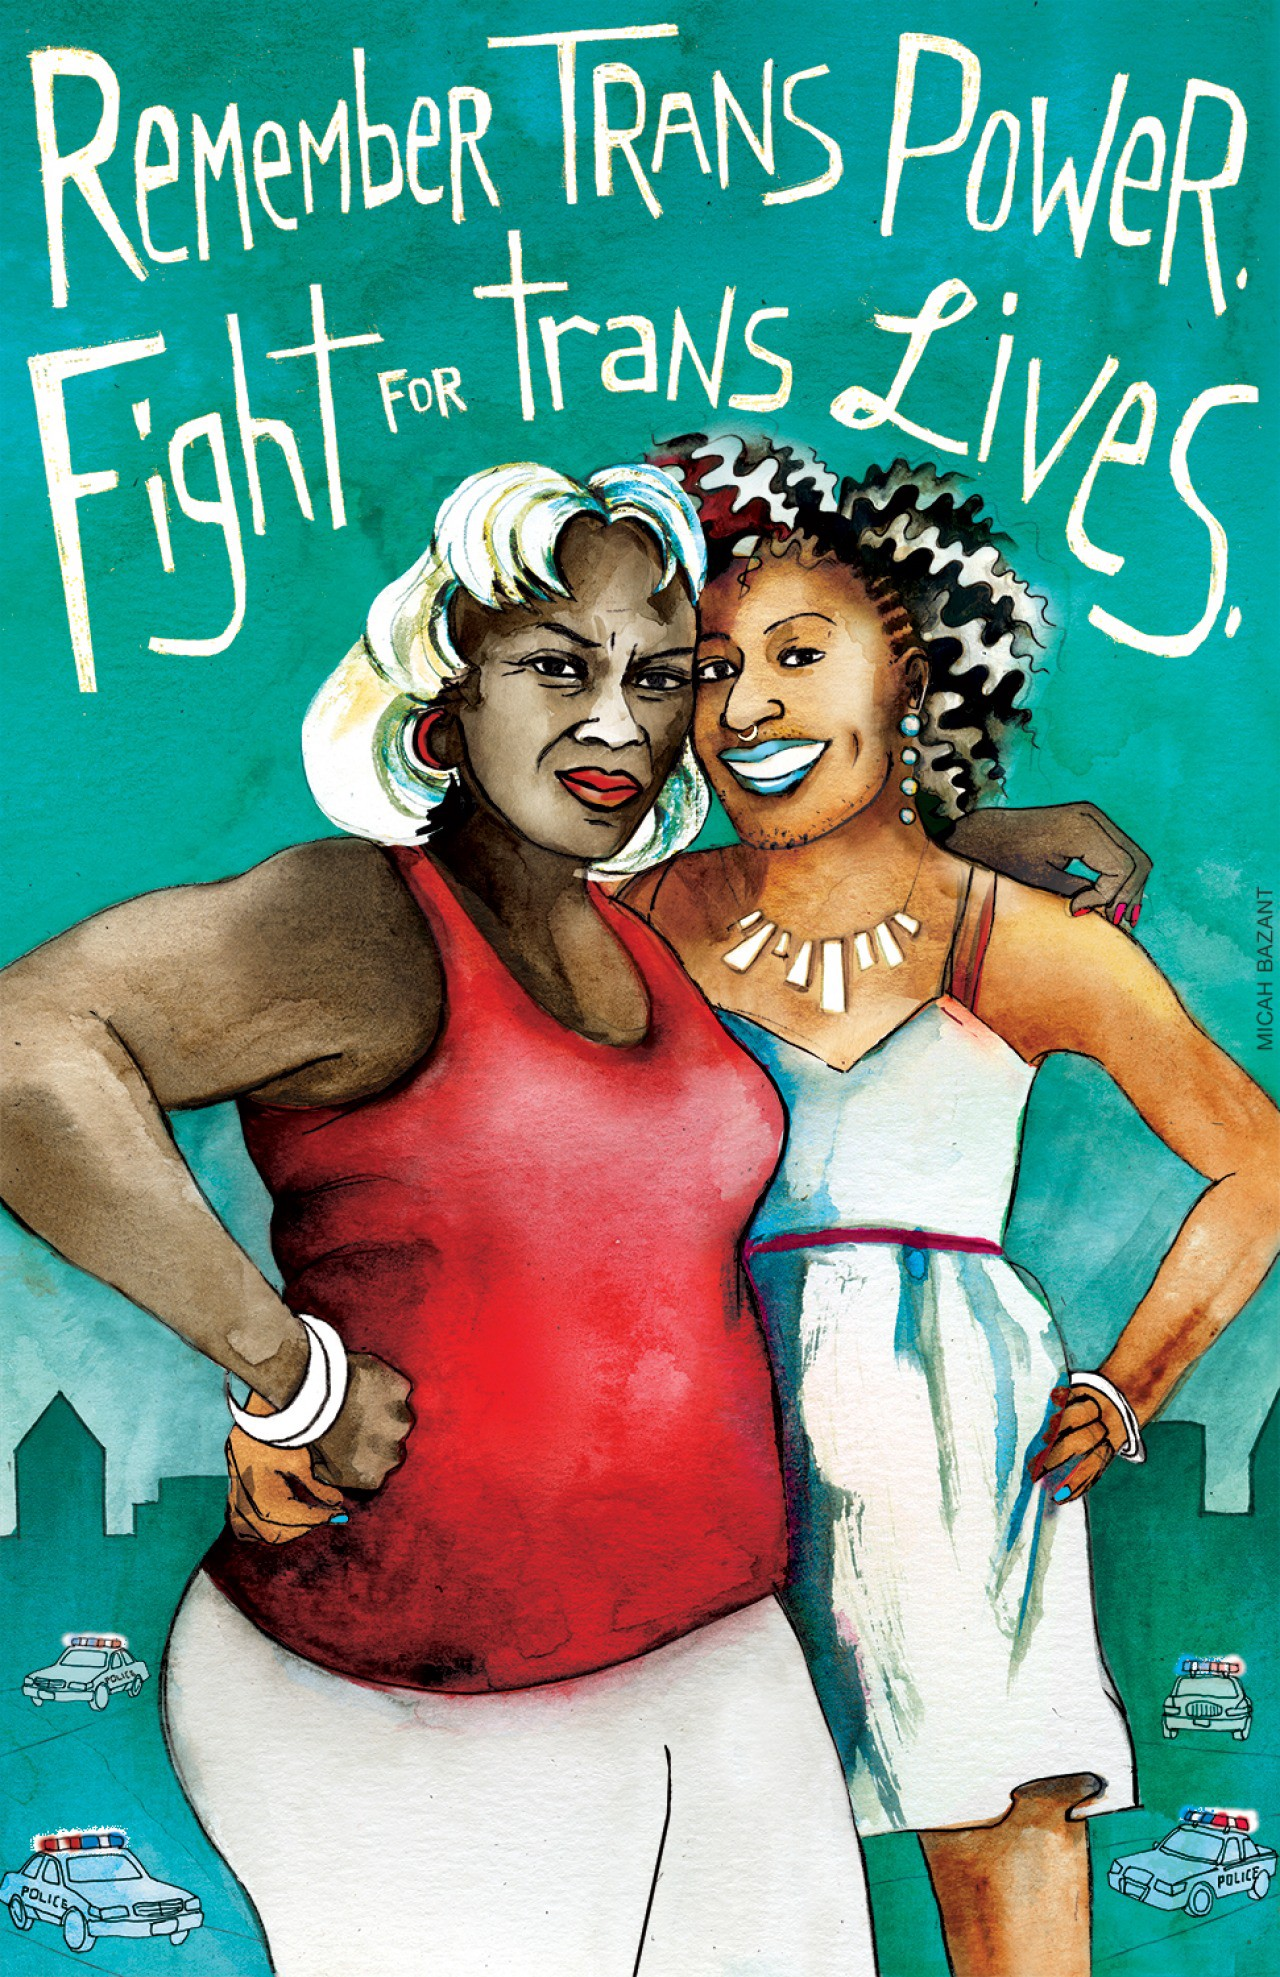 Image of 2 Black transgender women with turquoise background text that reads [remember trans power, fight for trans lives]